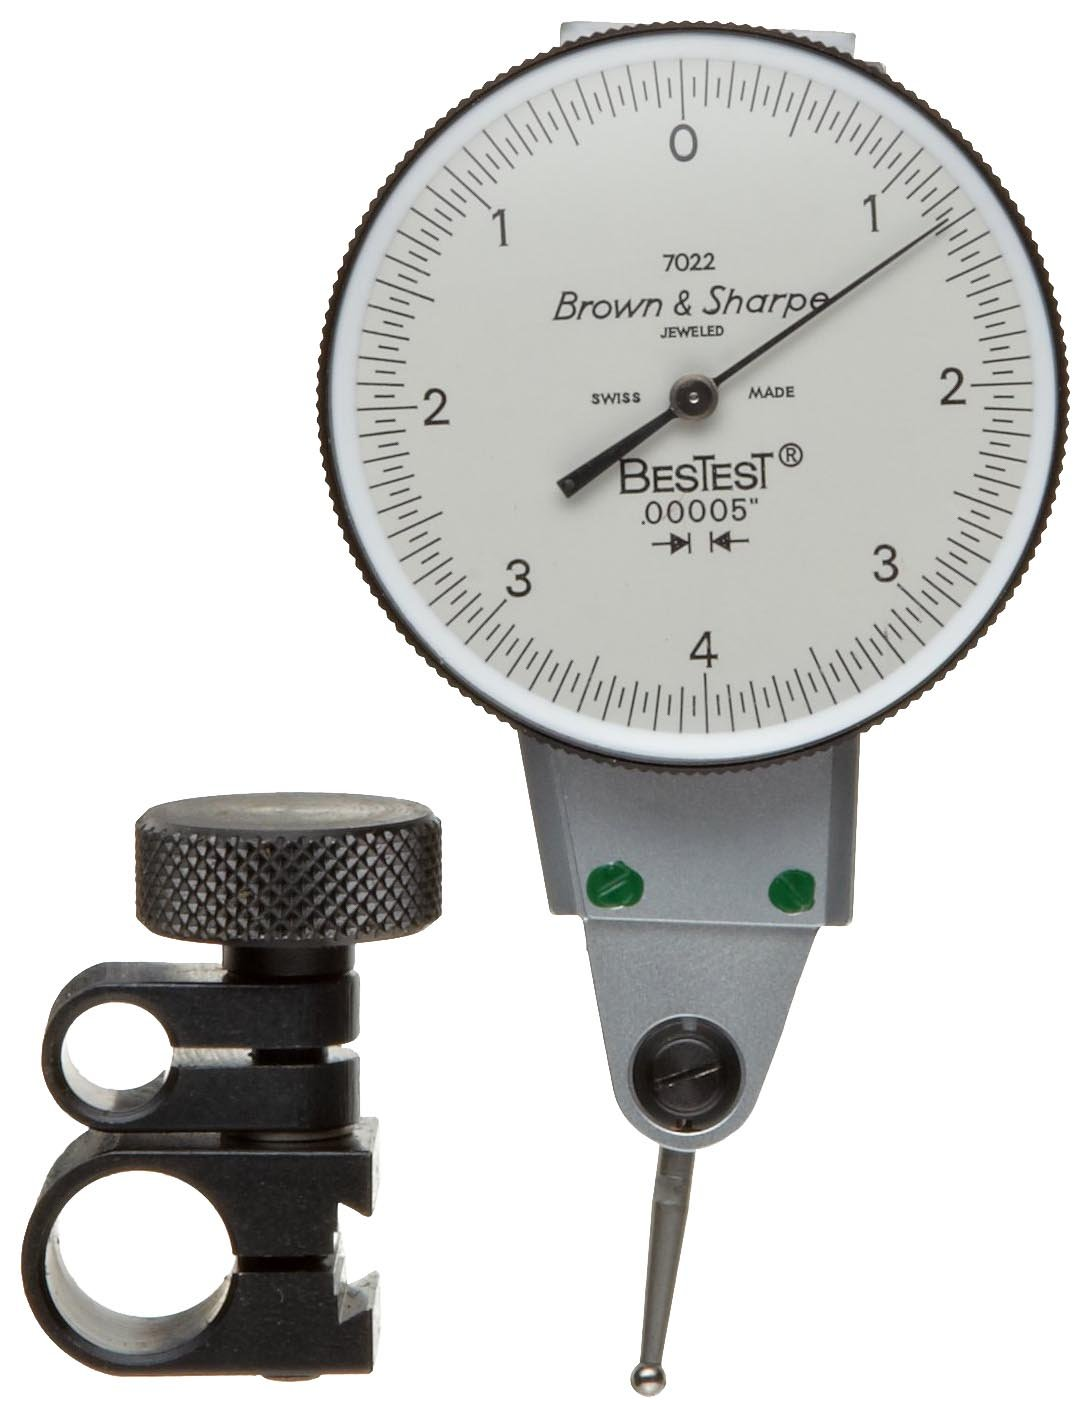 Brown & Sharpe 599-7022-3 Dial Test Indicator Set, Side Mounted, M1.4x0.3 Thread, White Dial, 0-4-0 Reading, 1.5